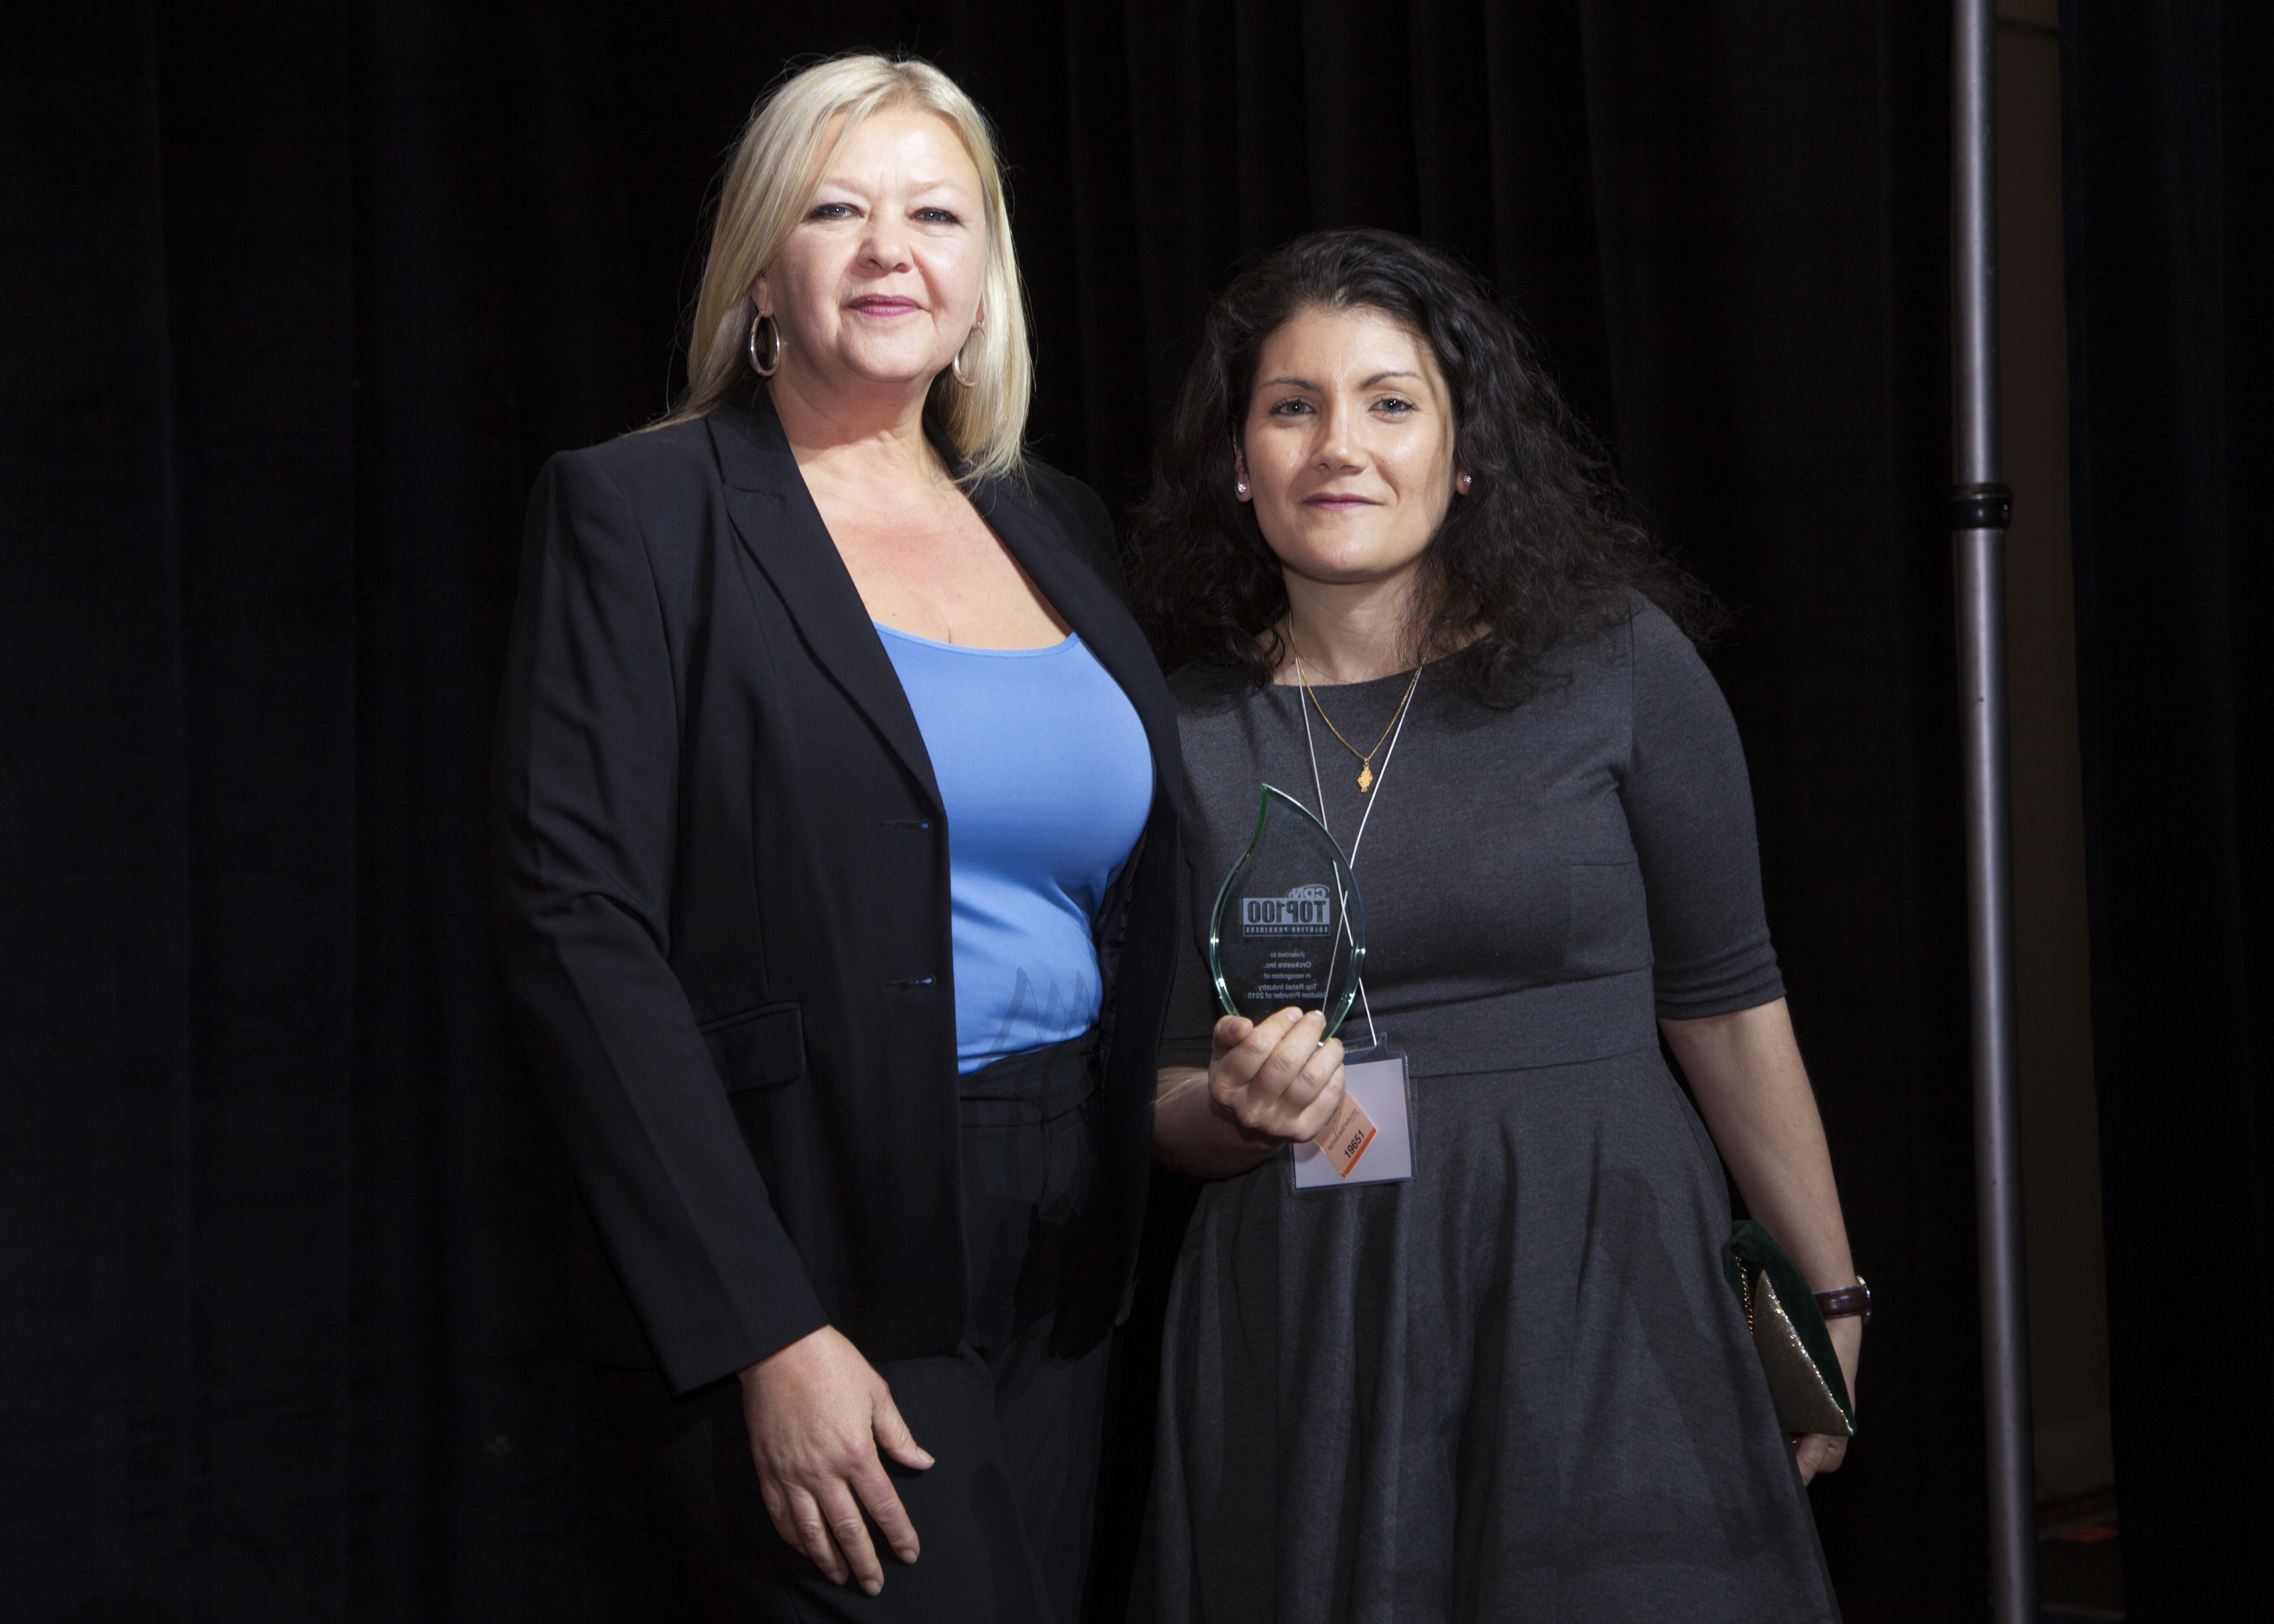 HP Inc. Mary Ann Yule, Managing Director @HPCanada Retail Industry Orckestra Inc. Emilie Tisseau, Partners and Alliances Marketing Manager